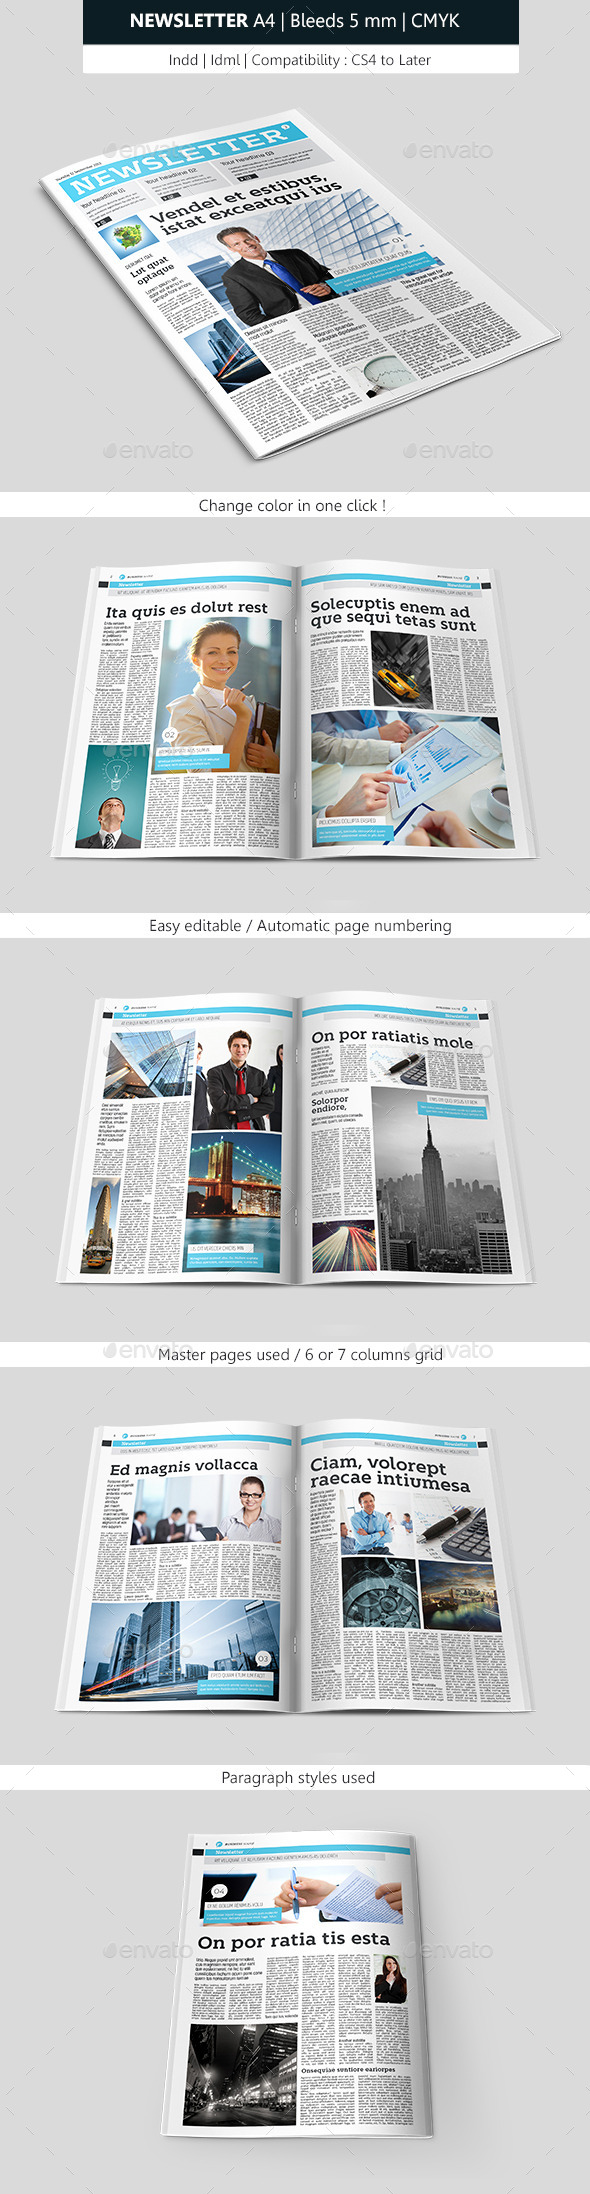 Creative Indesign Newsletter Template Design - Newsletters Print Templates